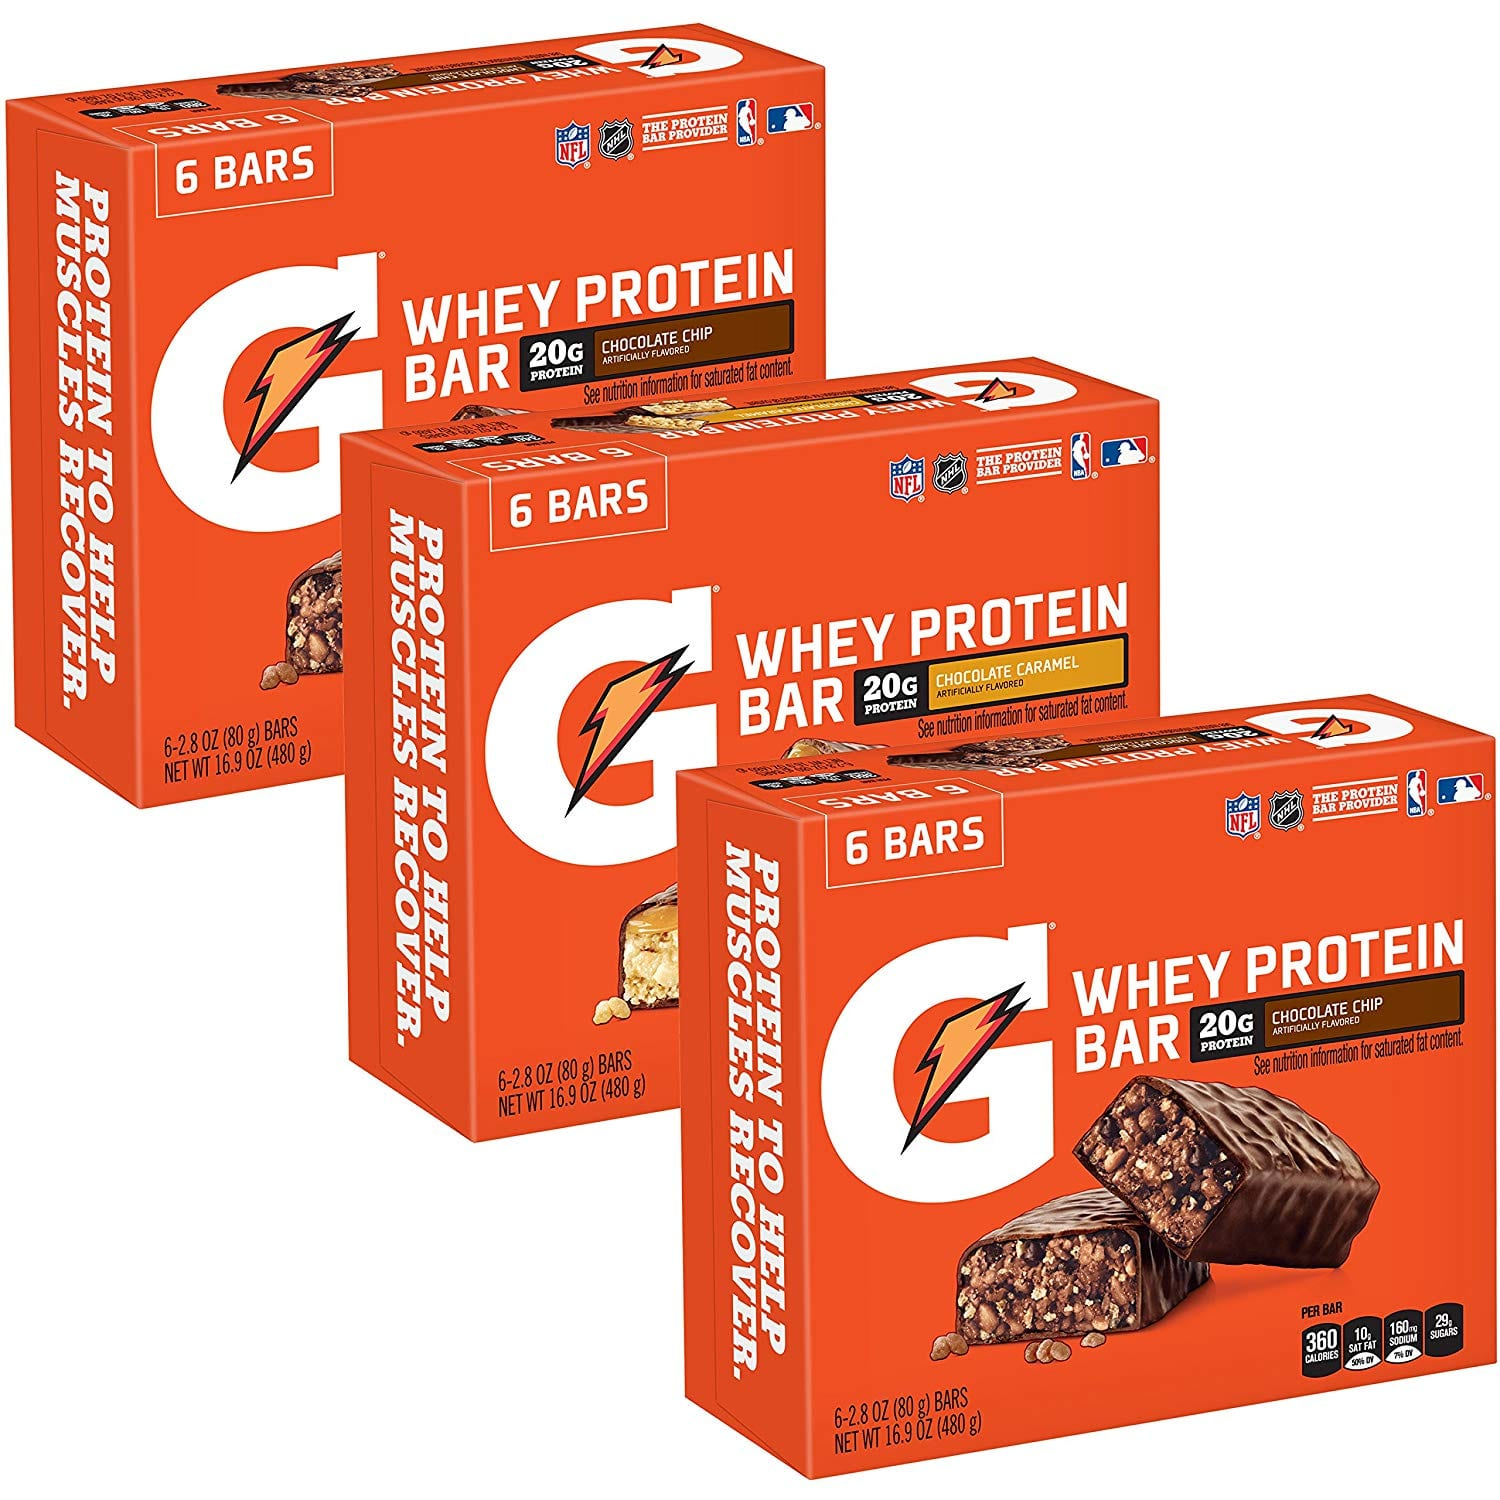 18-Count Gatorade Whey Protein Bars (Variety Pack) $17.29 5% or $14.98 15% AC w/s&s